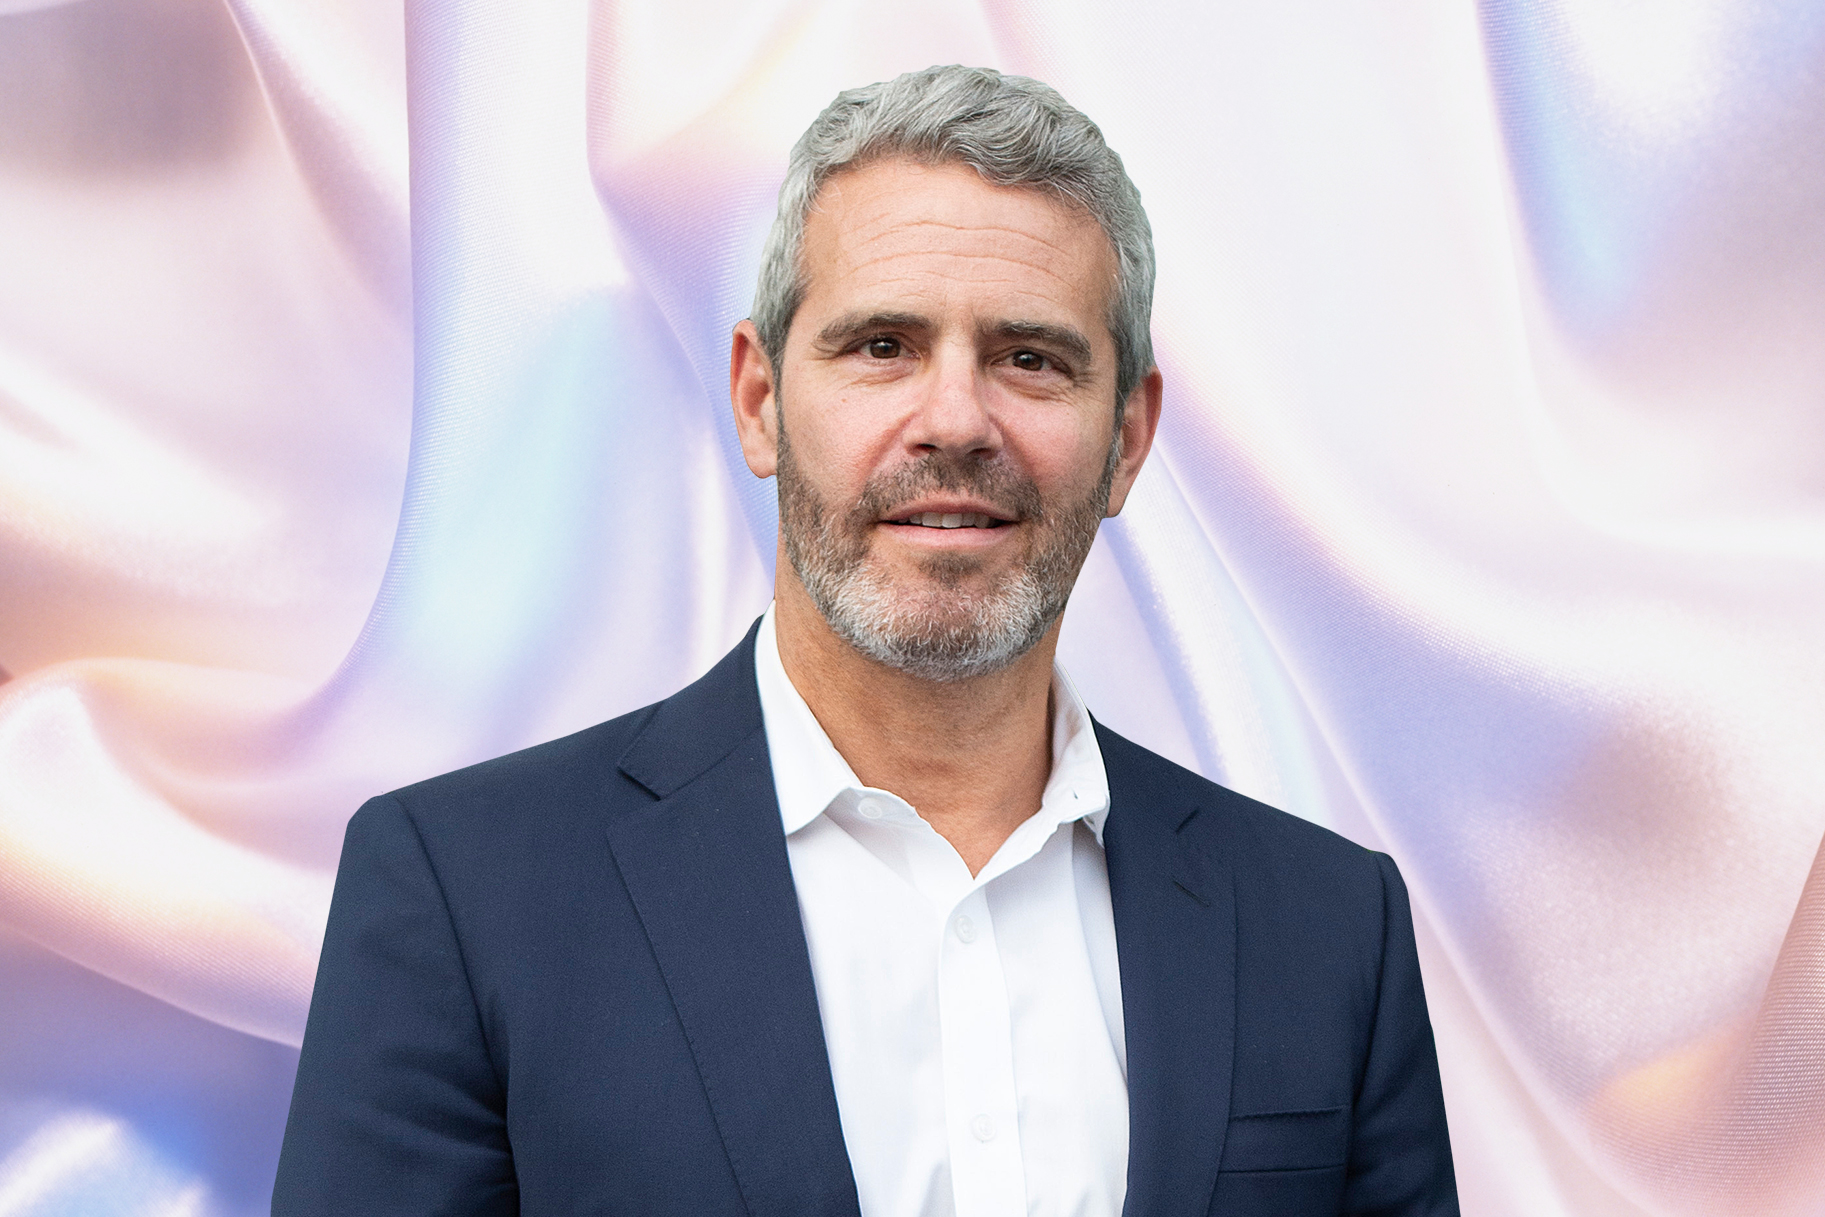 Andy Cohen Work From Home